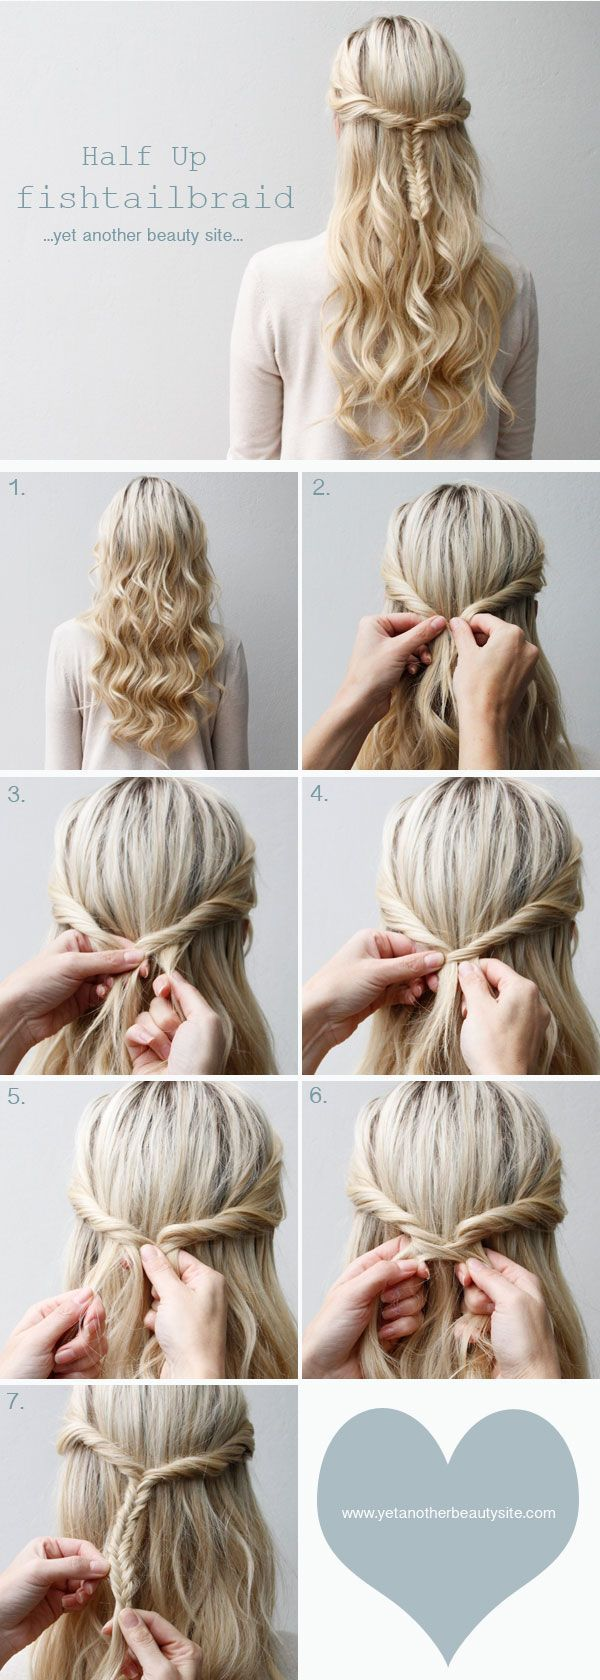 best long hair tutorials, long hair styles, hair inspiration  - Cosmopolitan.co.uk